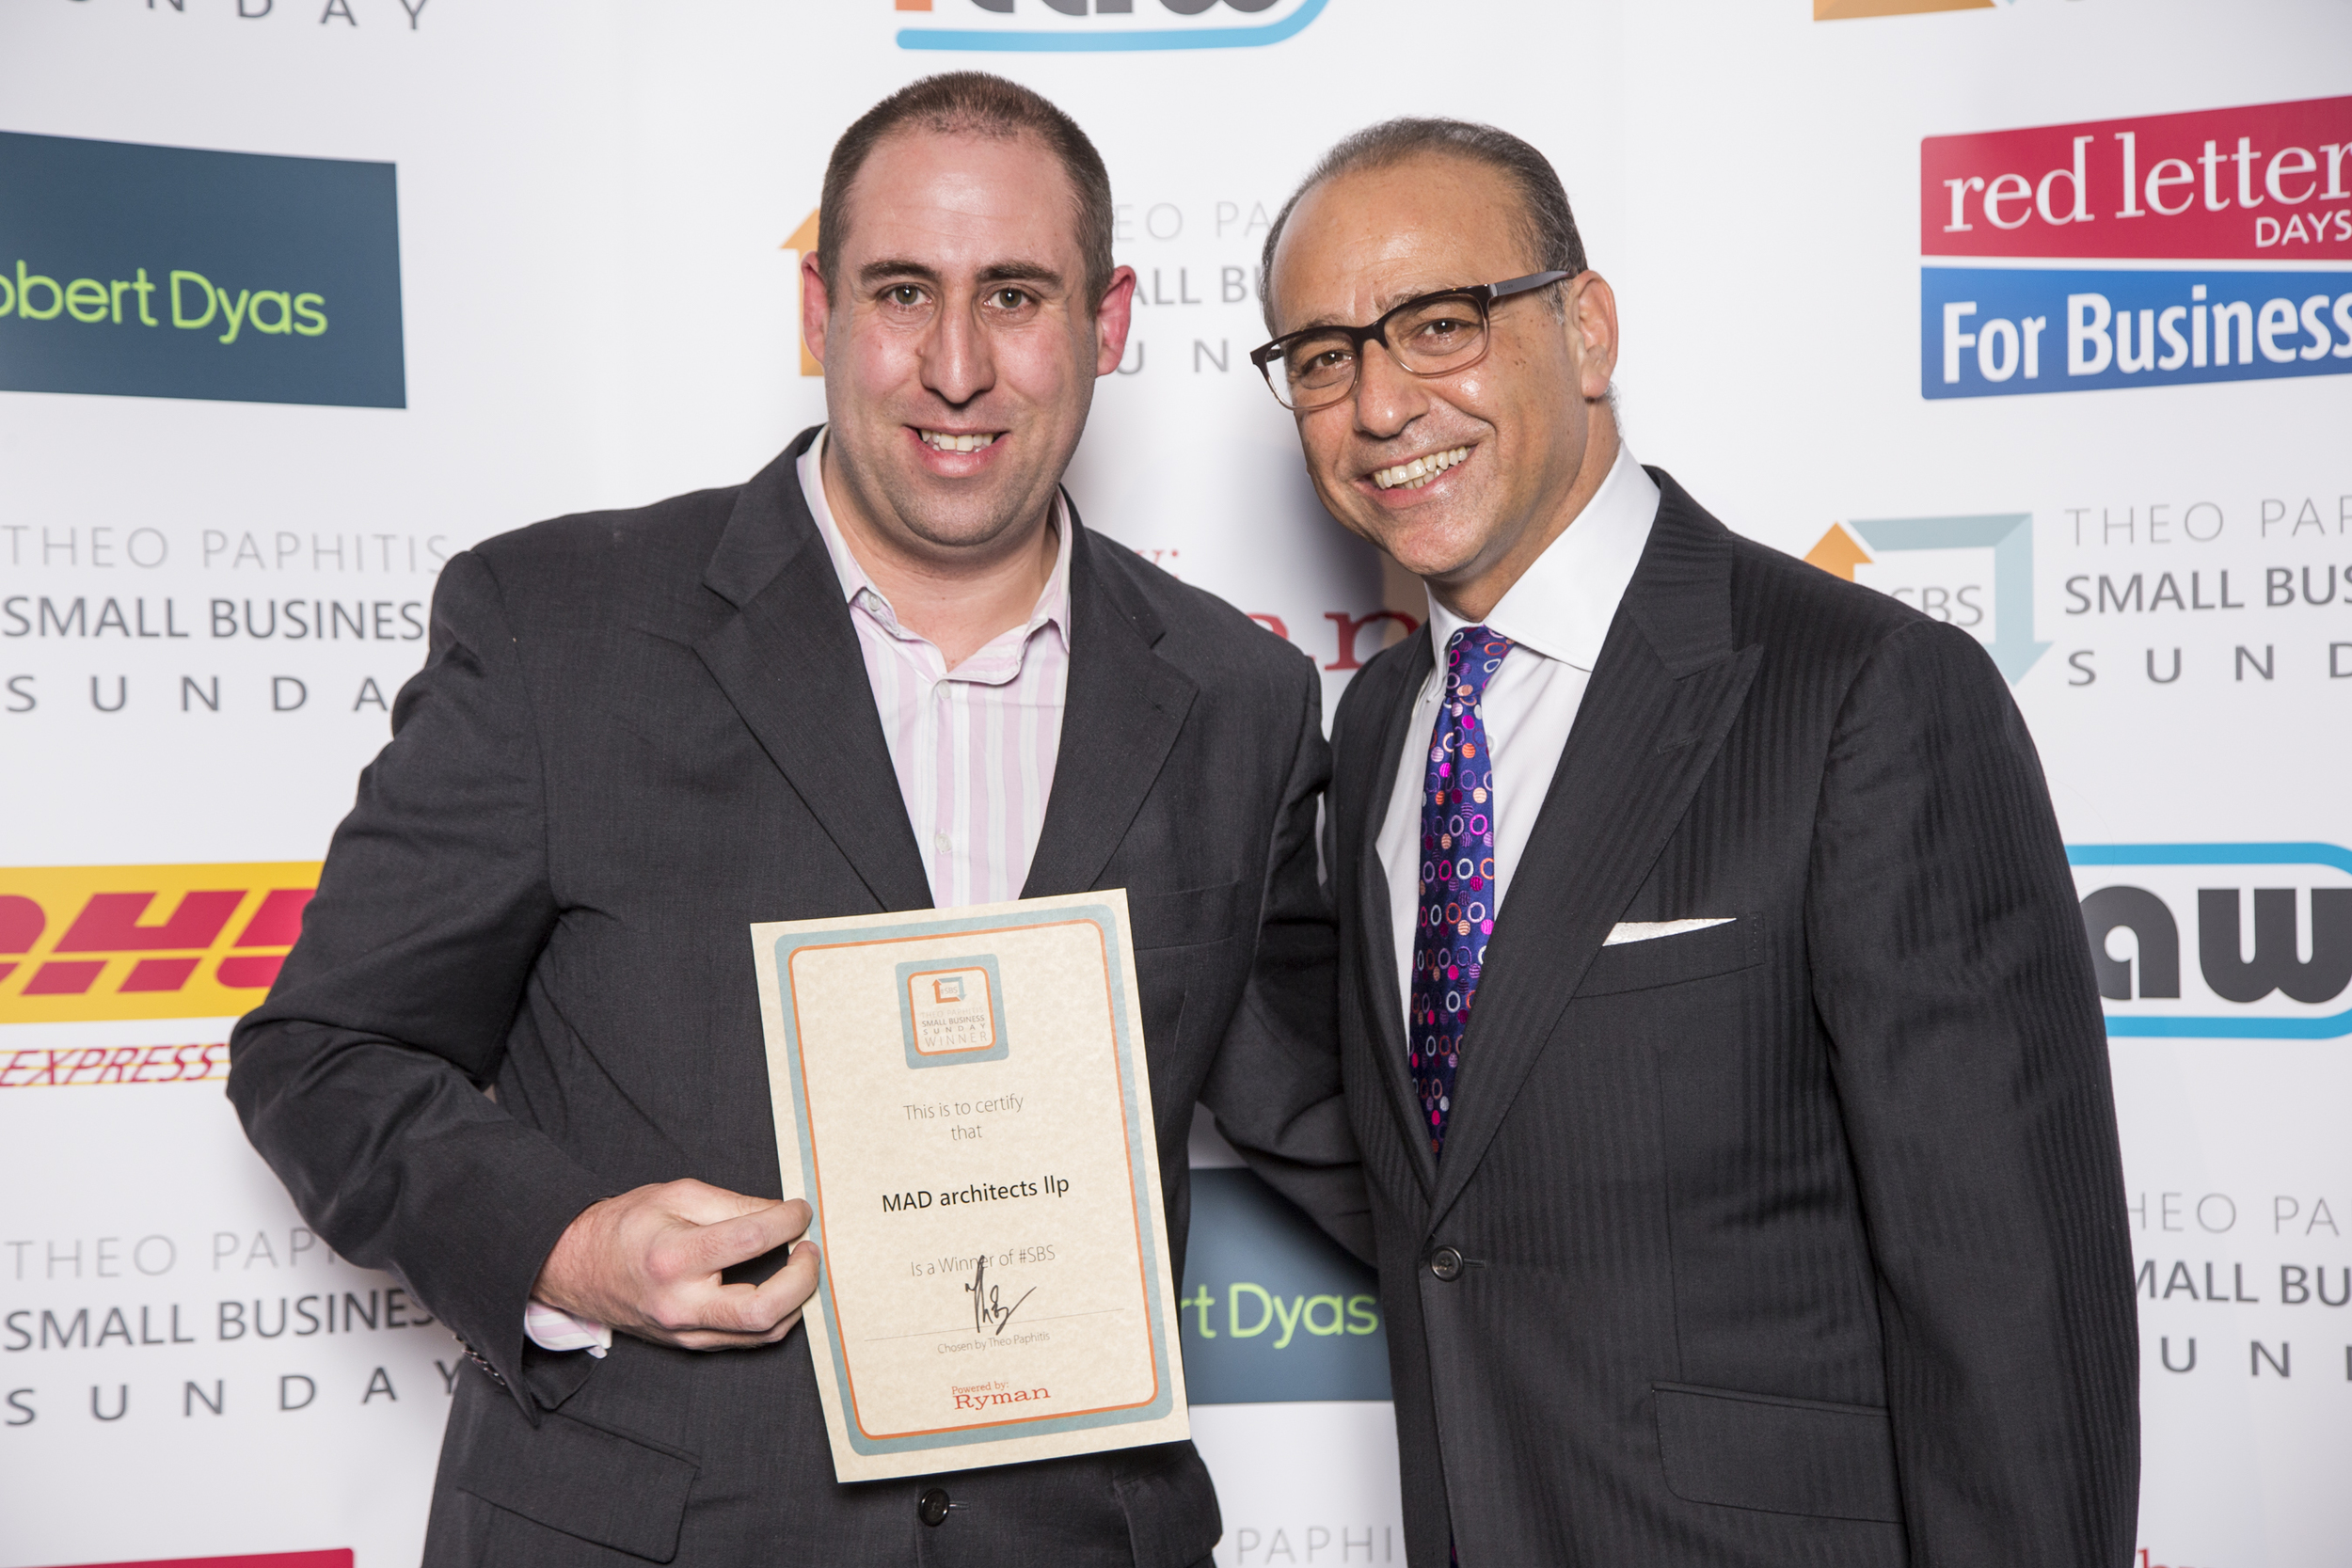 Martin Rix collects #SBS award from Theo Paphitis